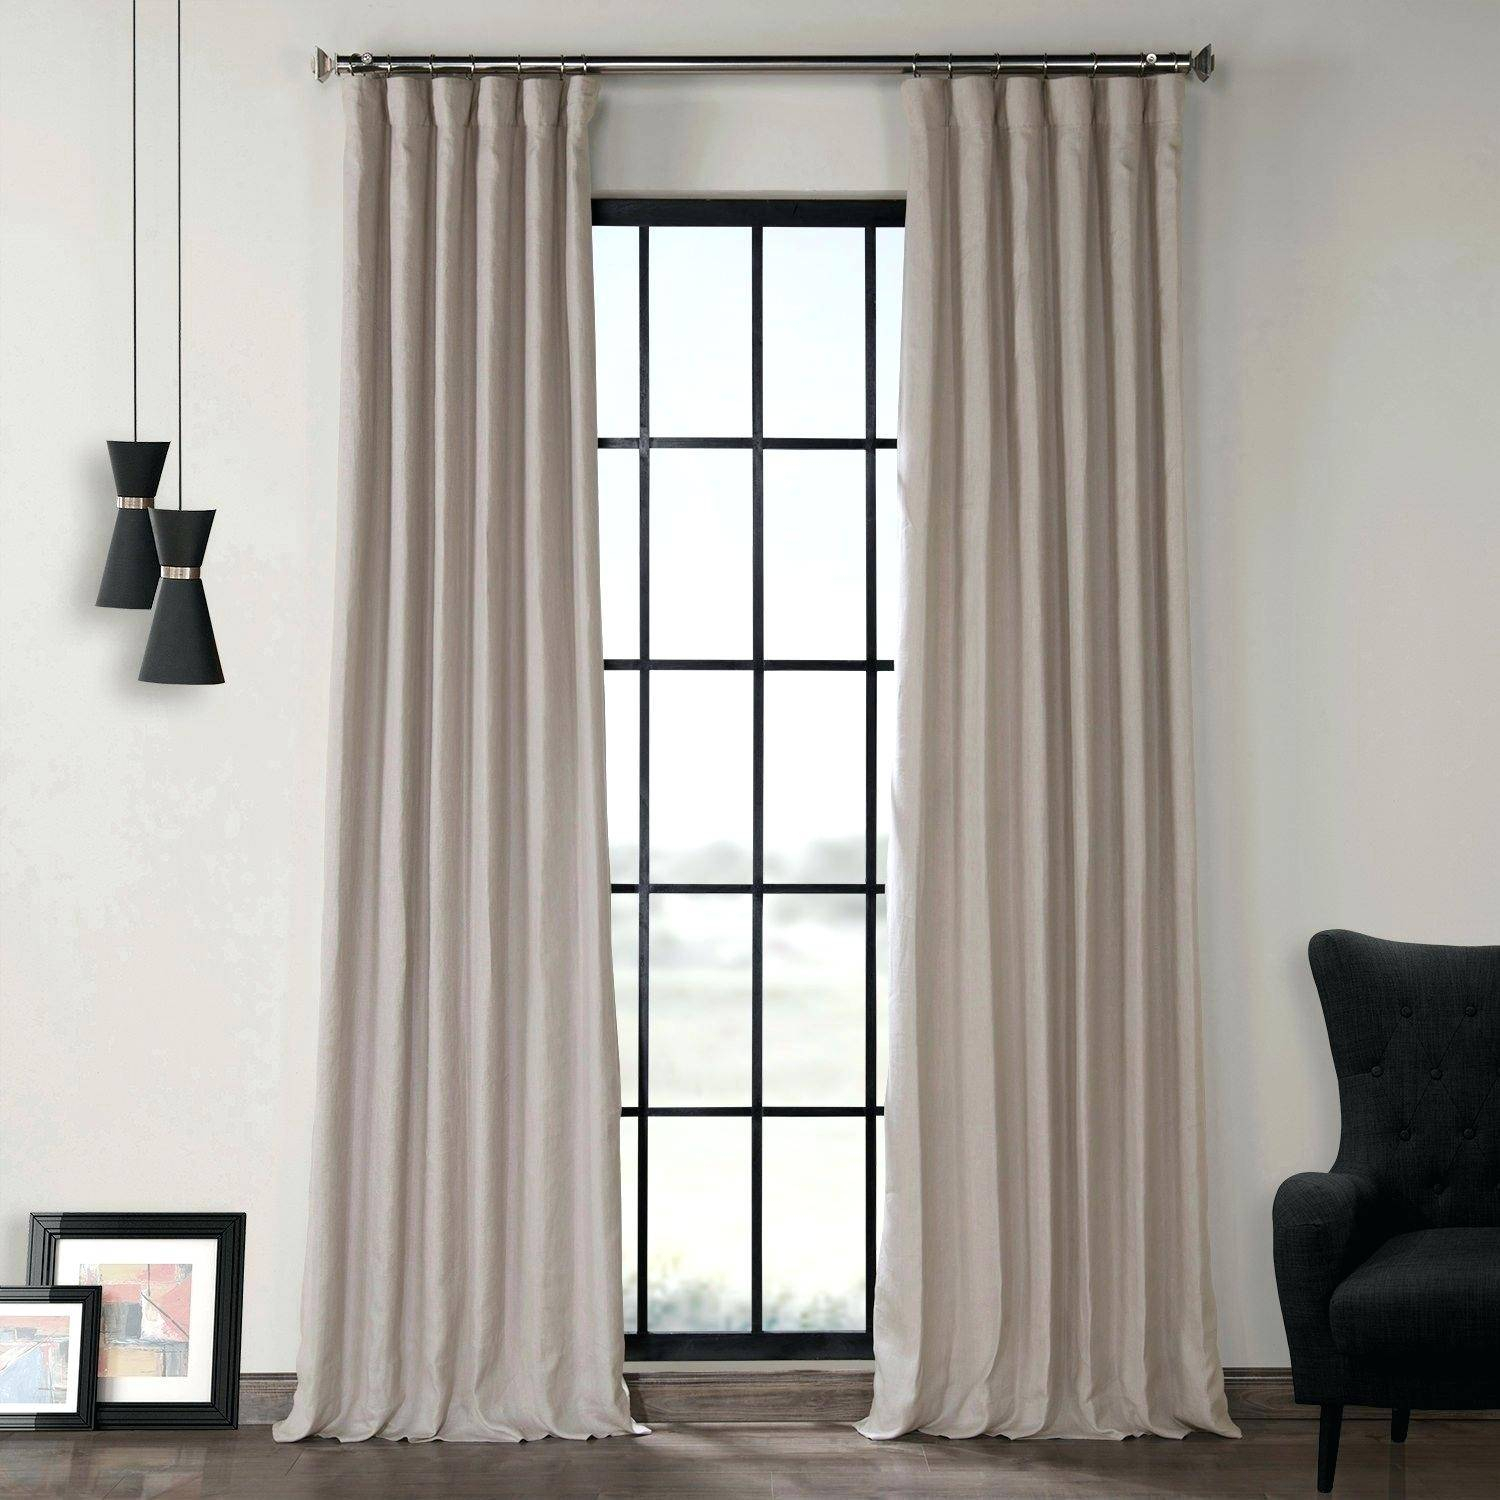 Window Length Curtains Sill Short Long Floor Half Full In Ultimate Blackout Short Length Grommet Curtain Panels (View 17 of 30)